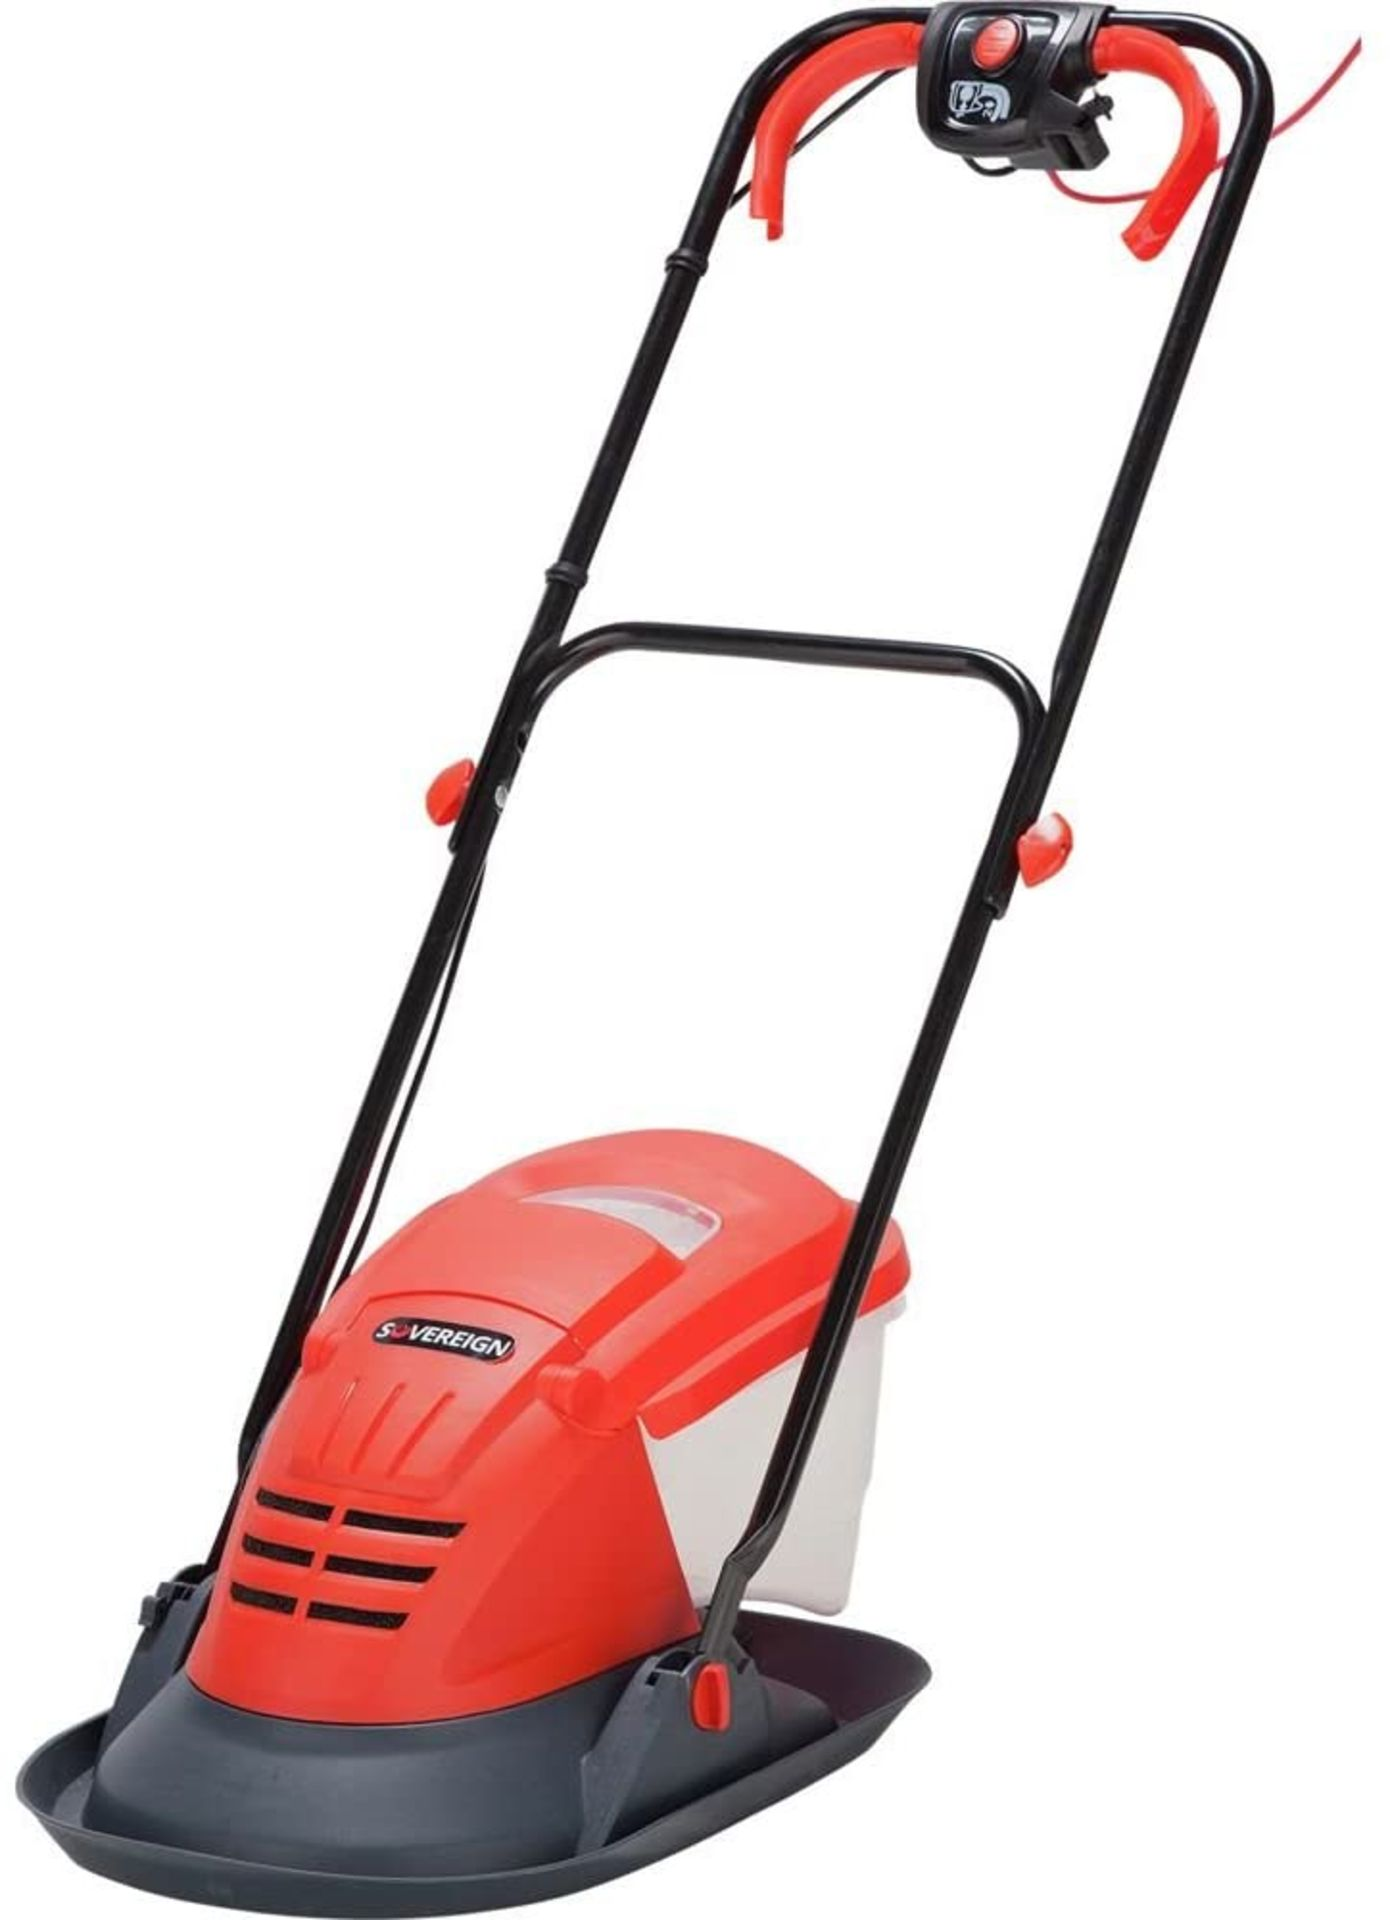 (P9) 2x Items. 1x Flymo EasiGlide 360V Electric Hover Collect Lawnmower RRP £139. 1x Sovereign 29c - Image 3 of 4